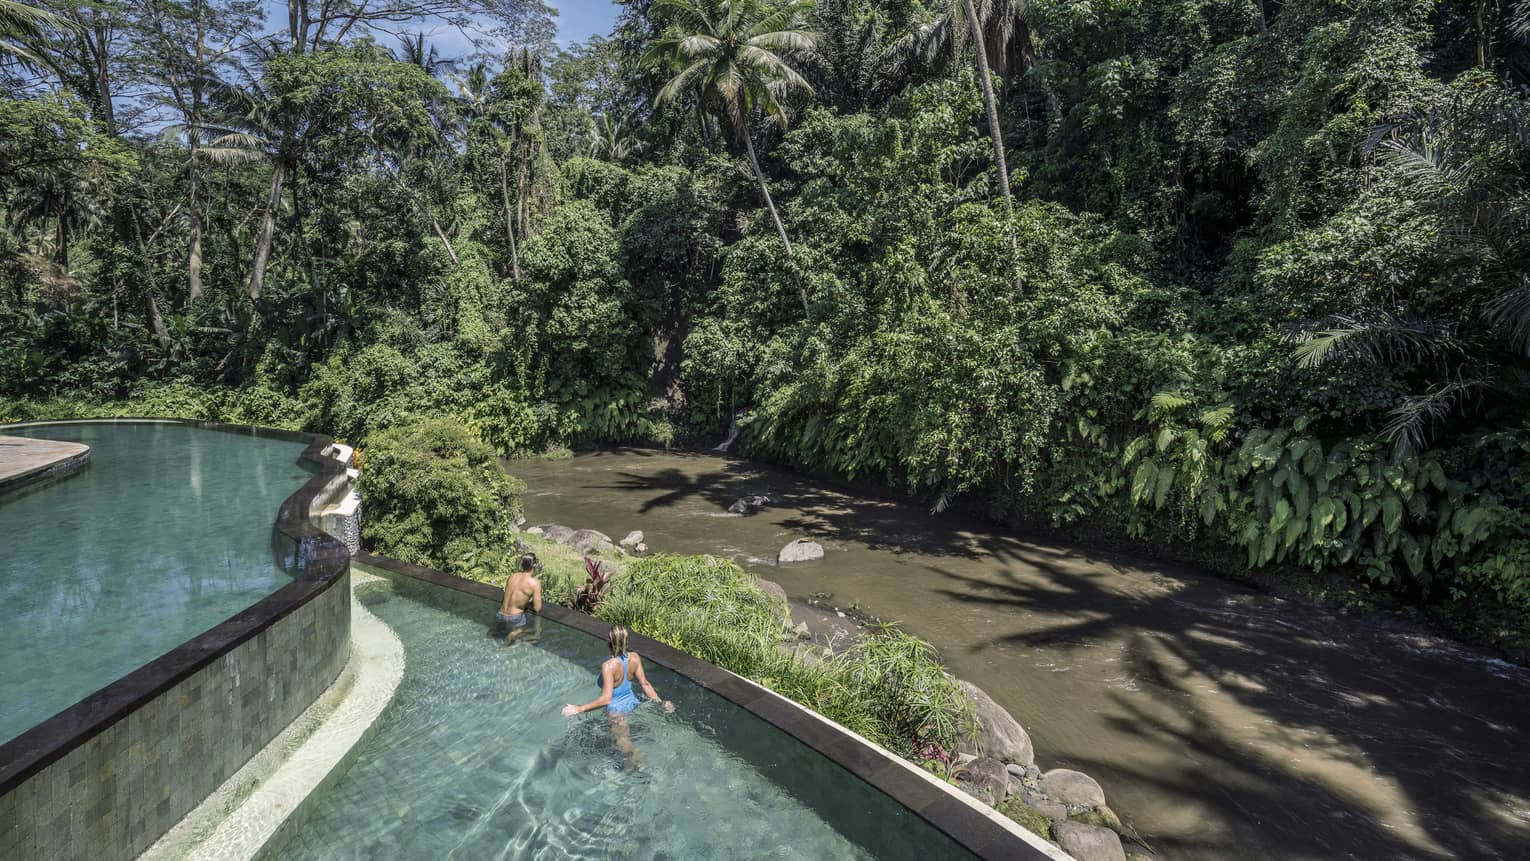 Hotel guests swimming in a pool, overlooking a river in Bali